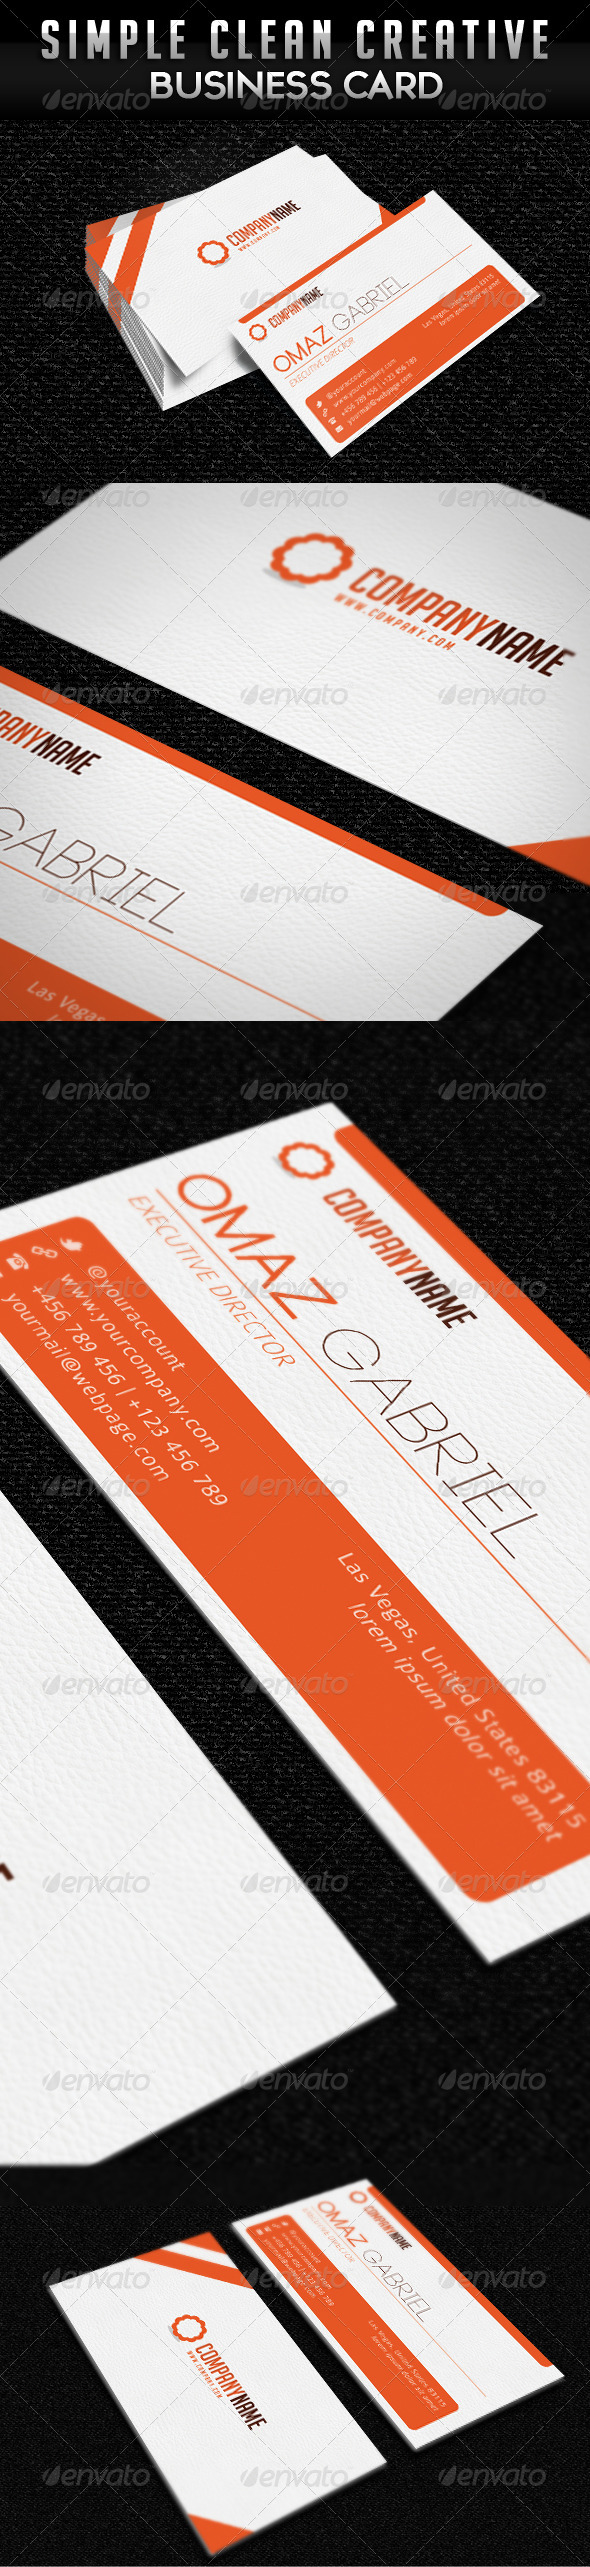 Simple Clean Minimalist Business Card - Corporate Business Cards